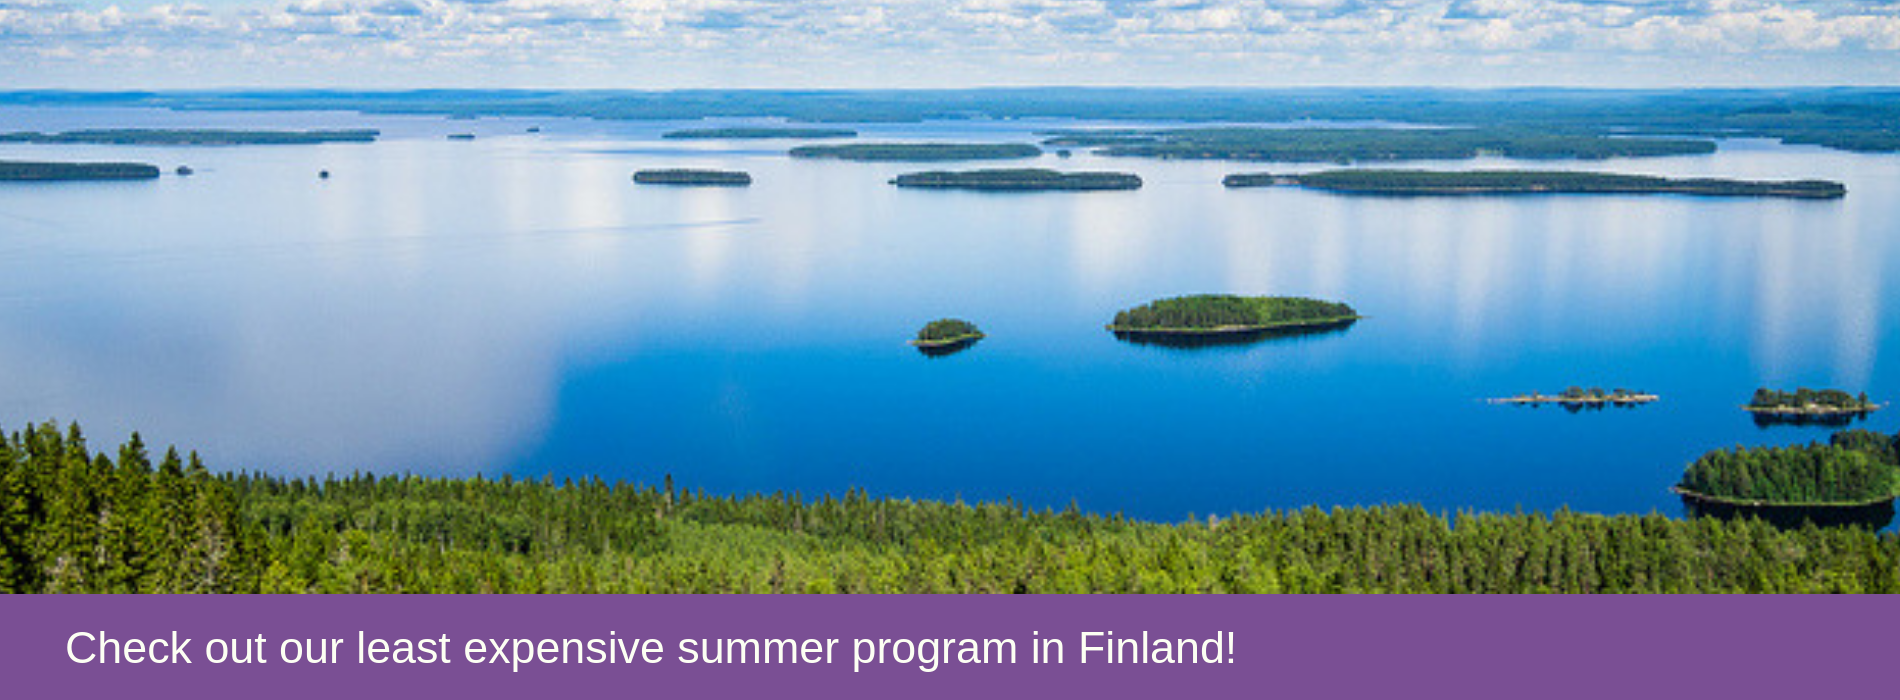 Check out our least expensive summer program in Finland!